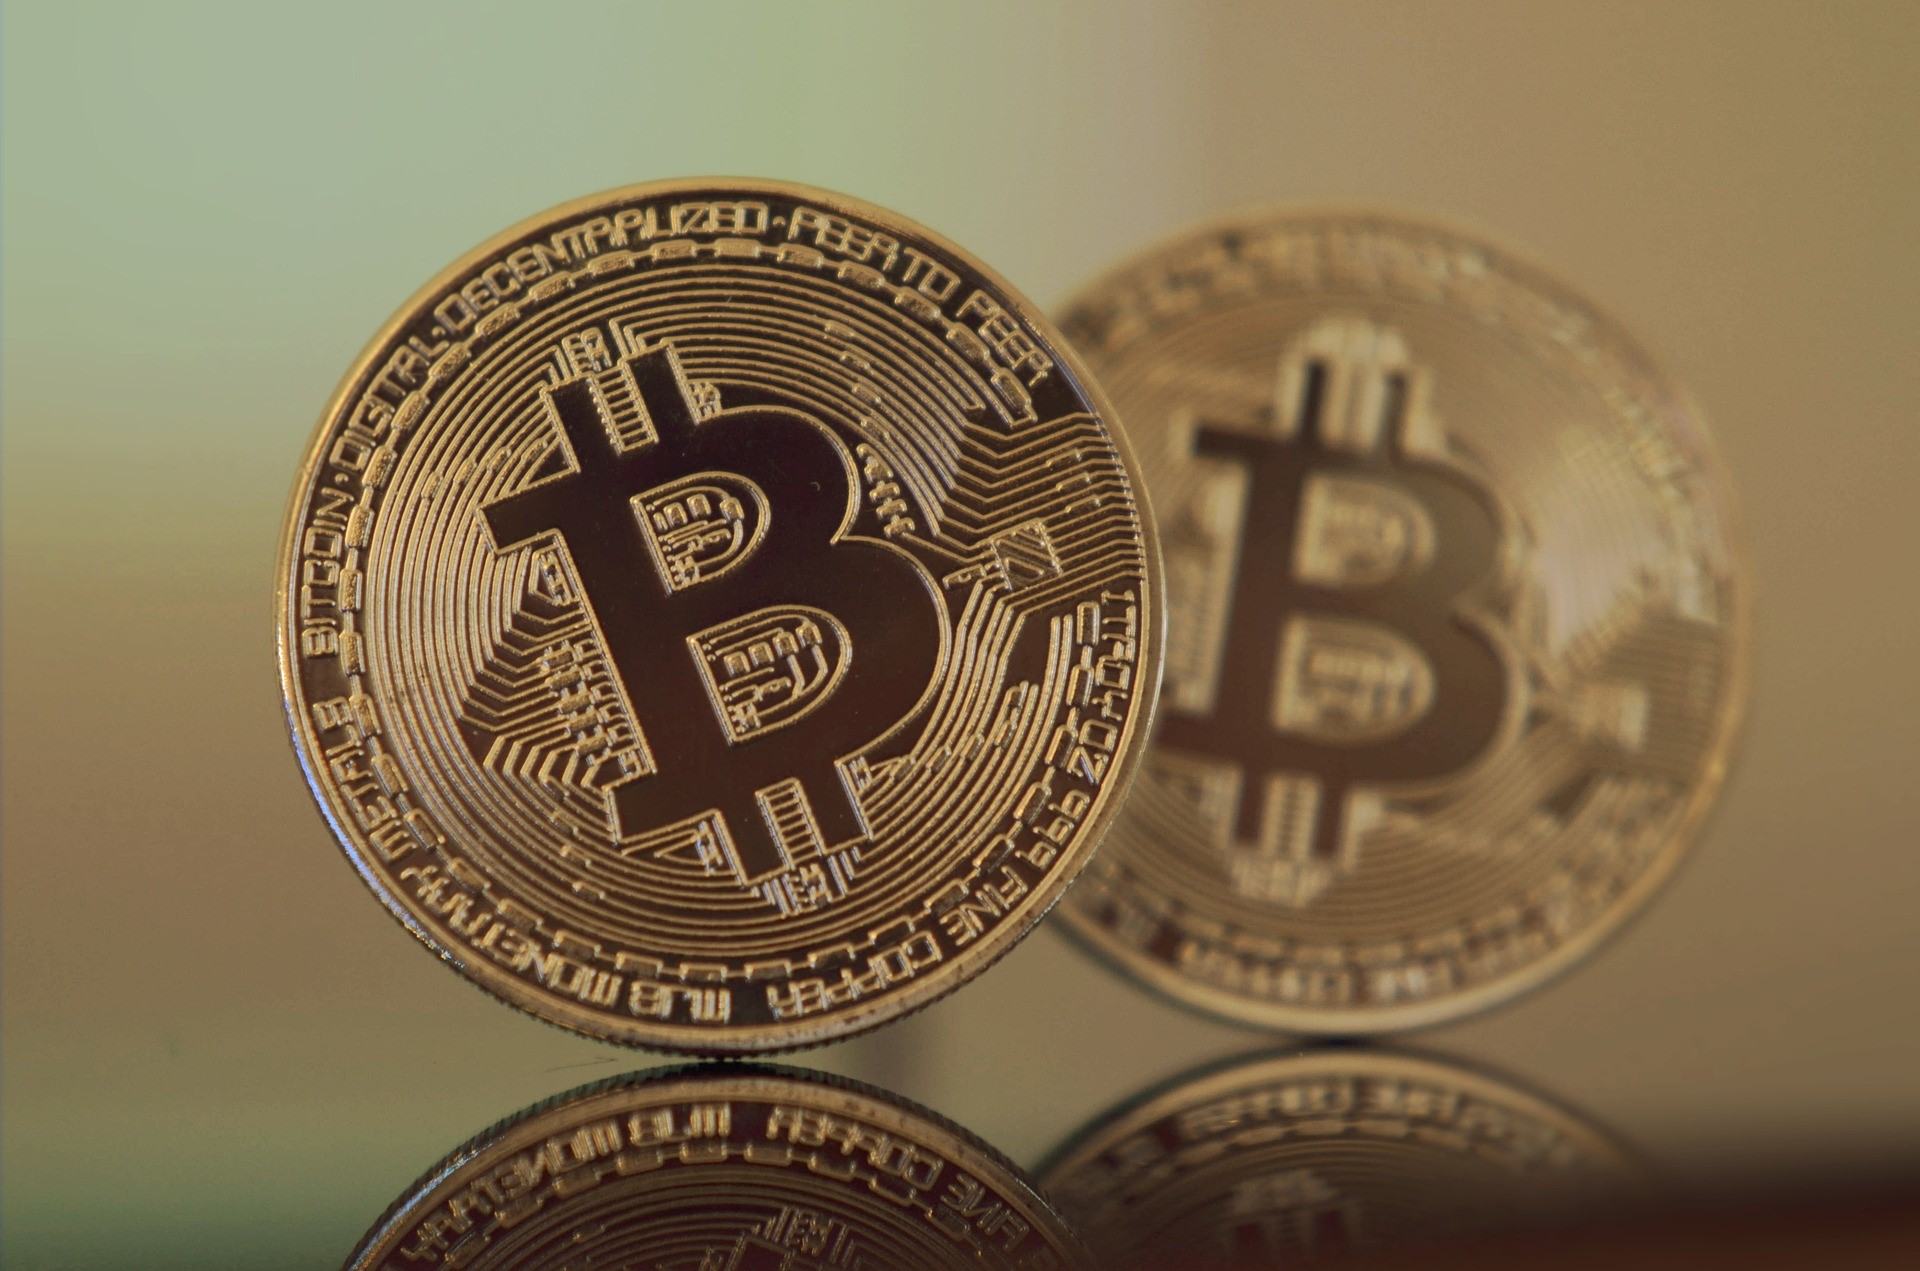 Taxation of Bitcoin in Australia | Munro's Accountants and Advisors